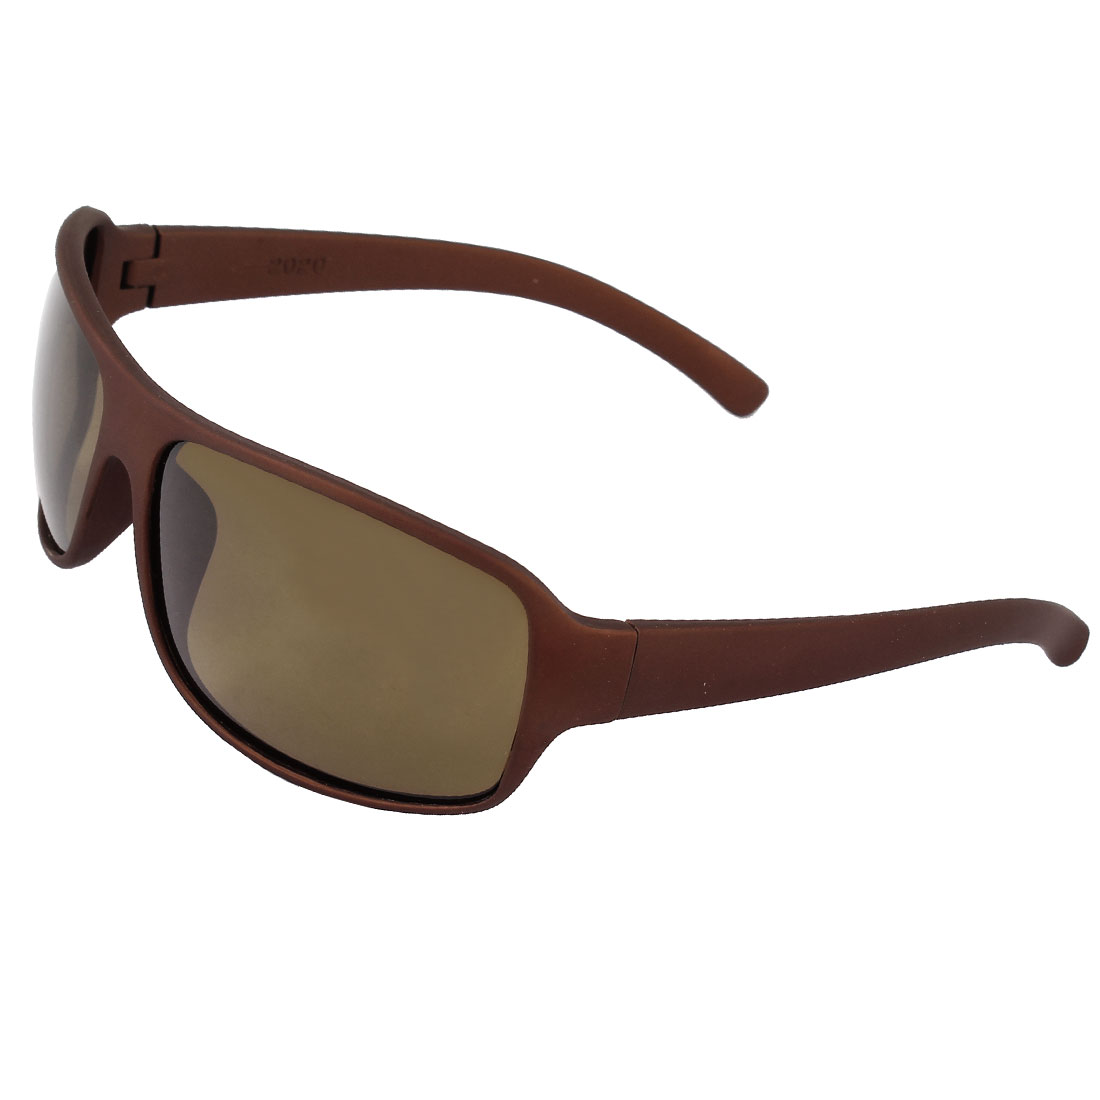 Single Bridge Plastic Full Rim Frame Rectangle Shaped Lens Shopping Riding Camping Leisure Polarized Glasses Eyewear Chocolate Color for Man